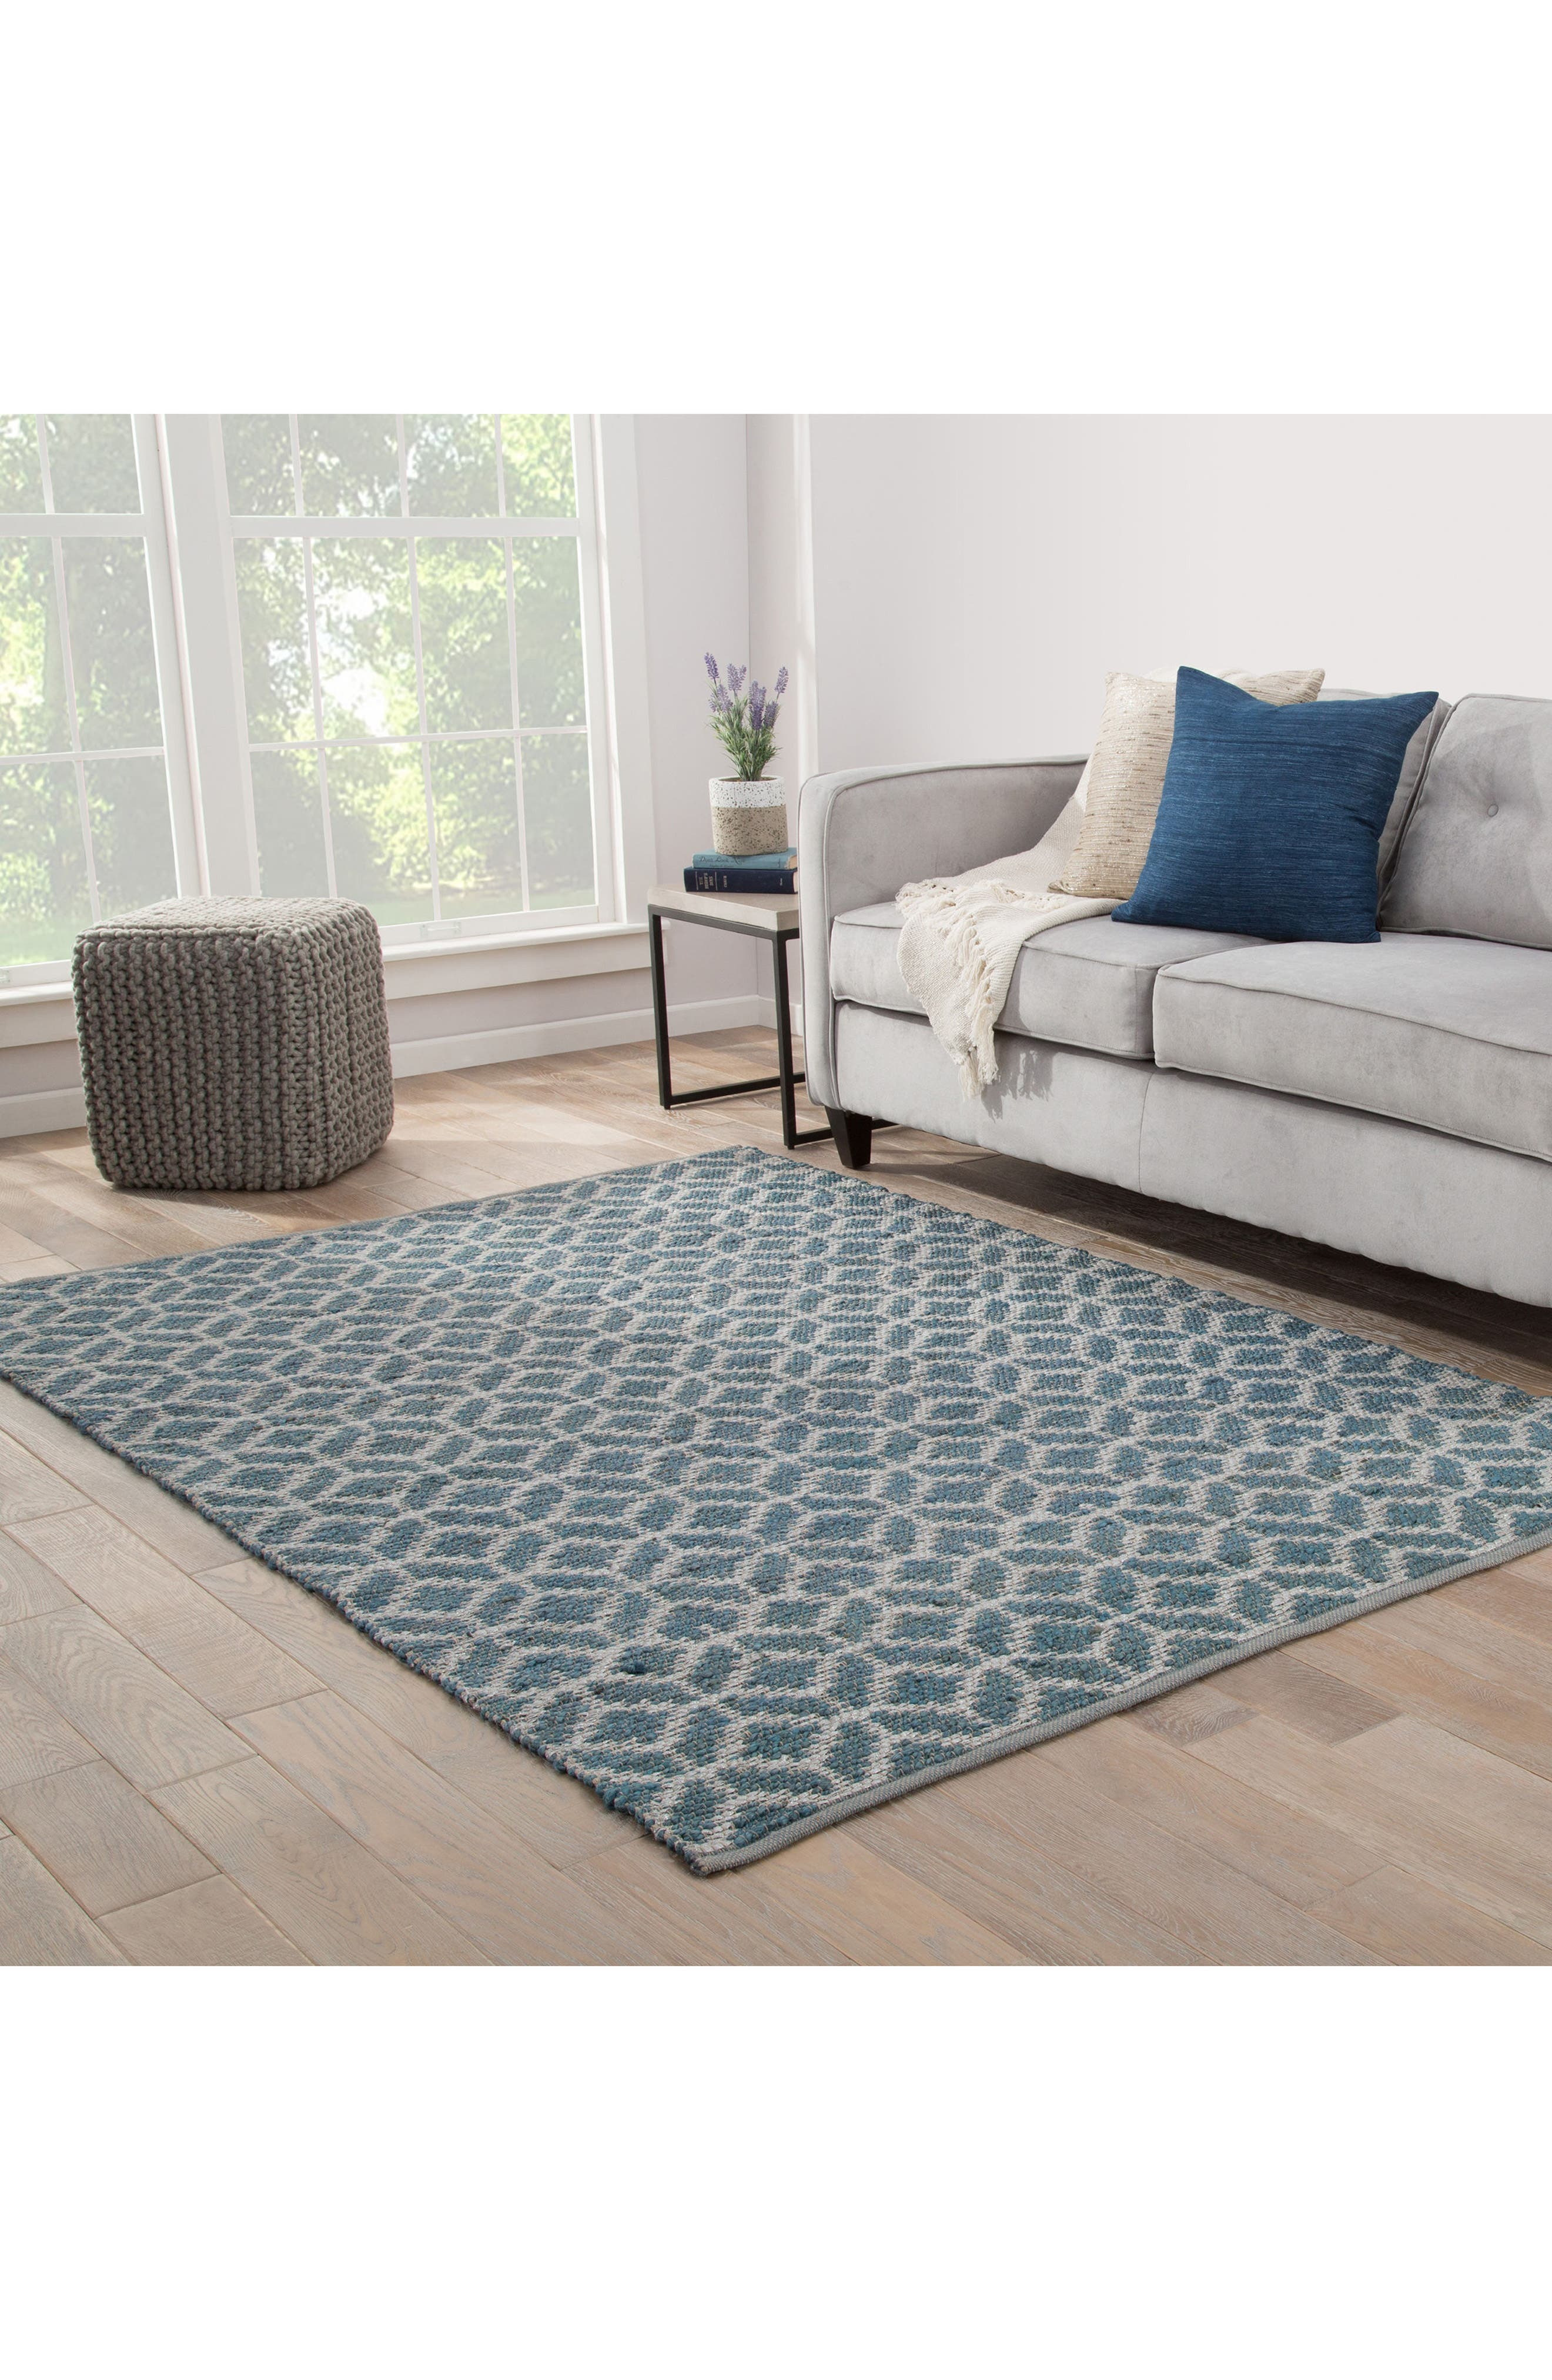 Calm Waters Rug,                             Alternate thumbnail 10, color,                             INDIAN TEAL/ SILVER